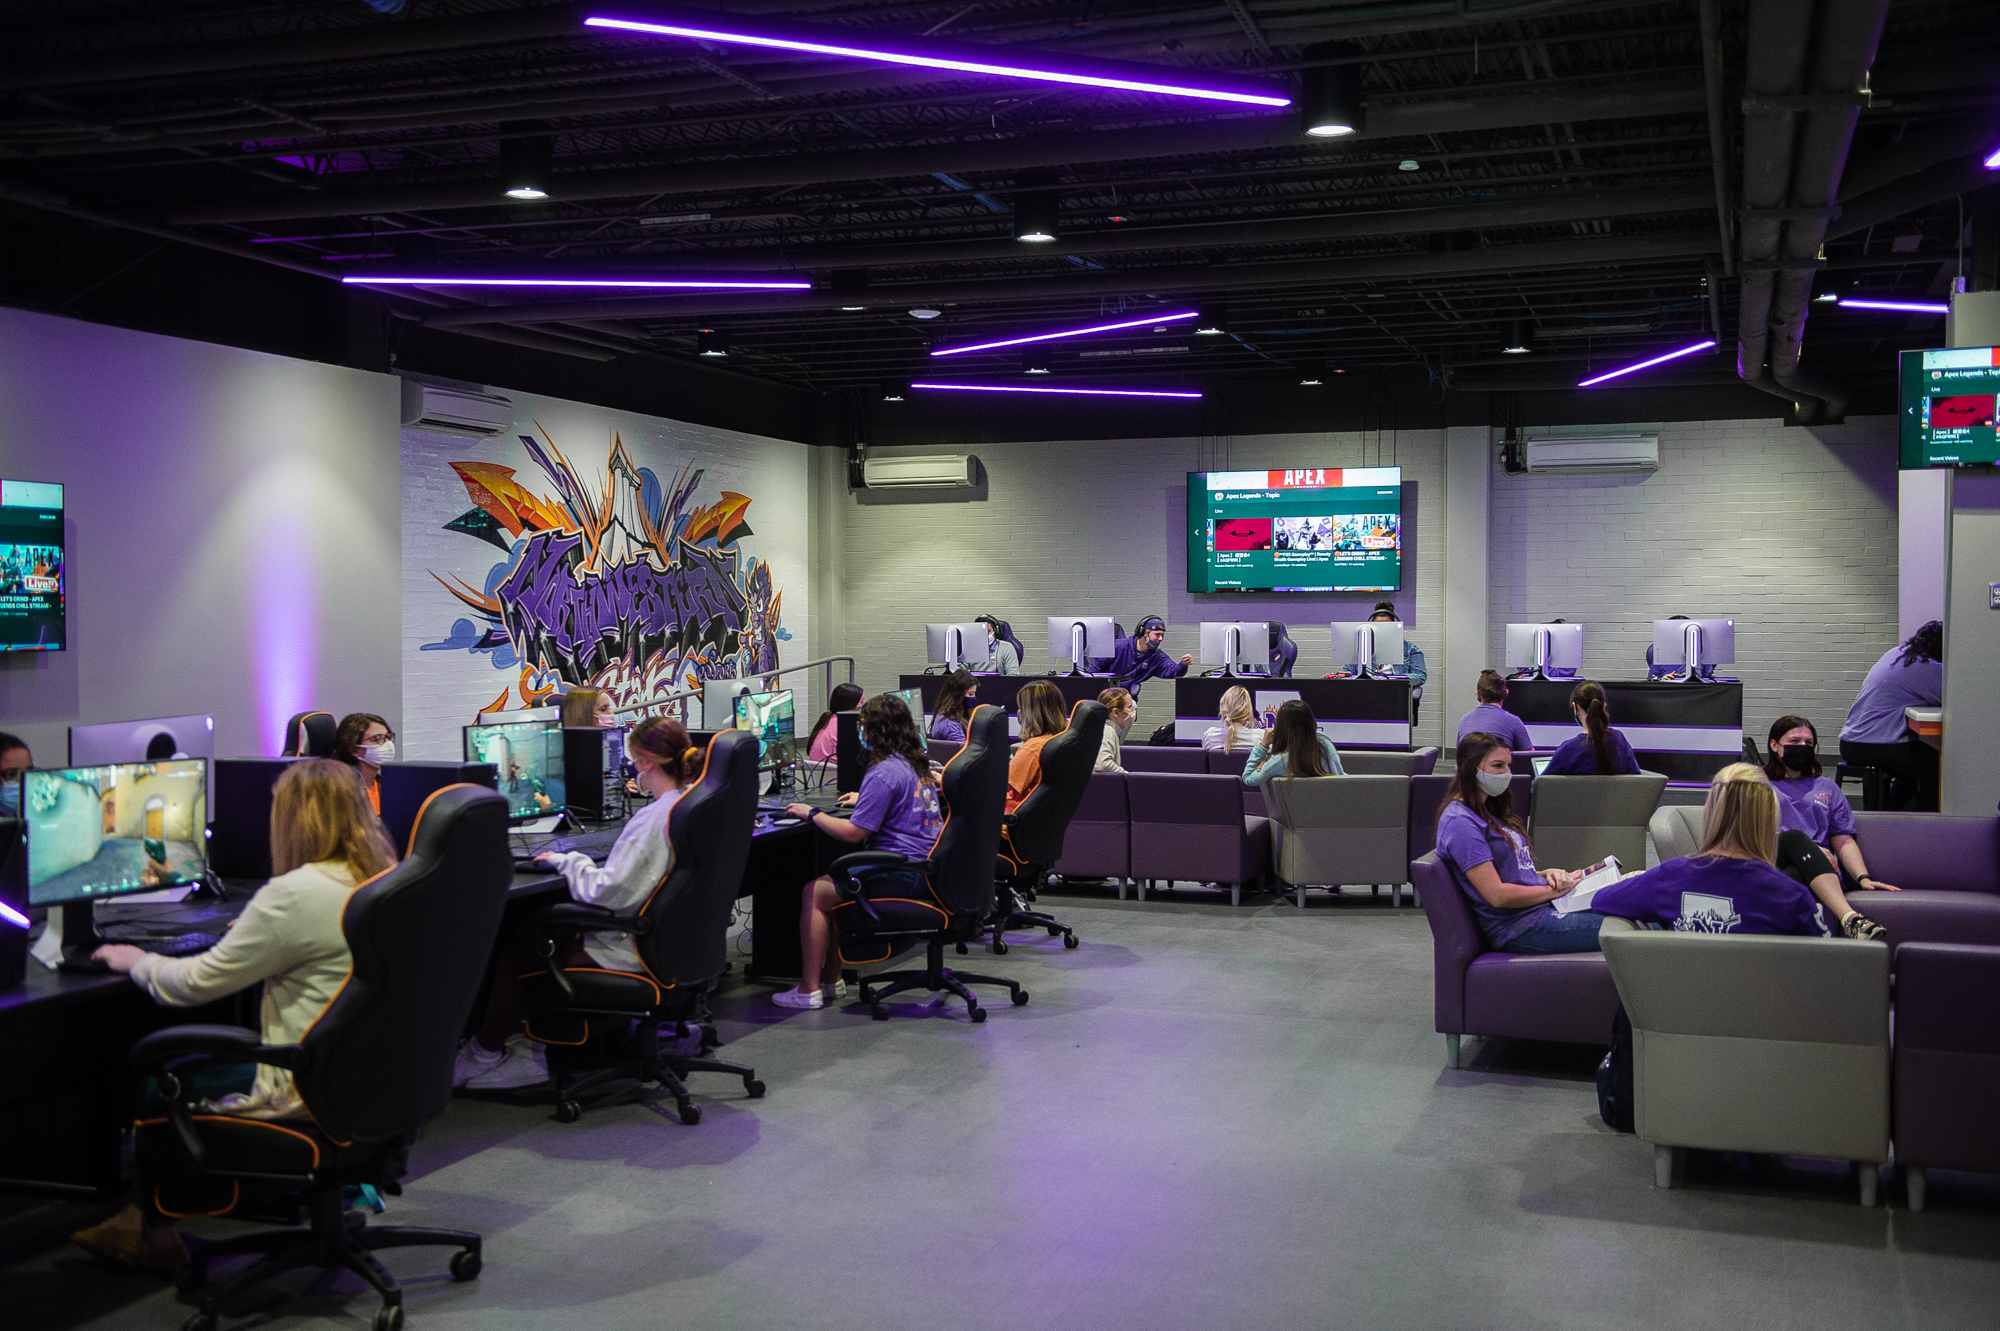 In the NSU Esports Venue, some students game at desktop PCs while others relax and chat with each other on the lounge furniture.